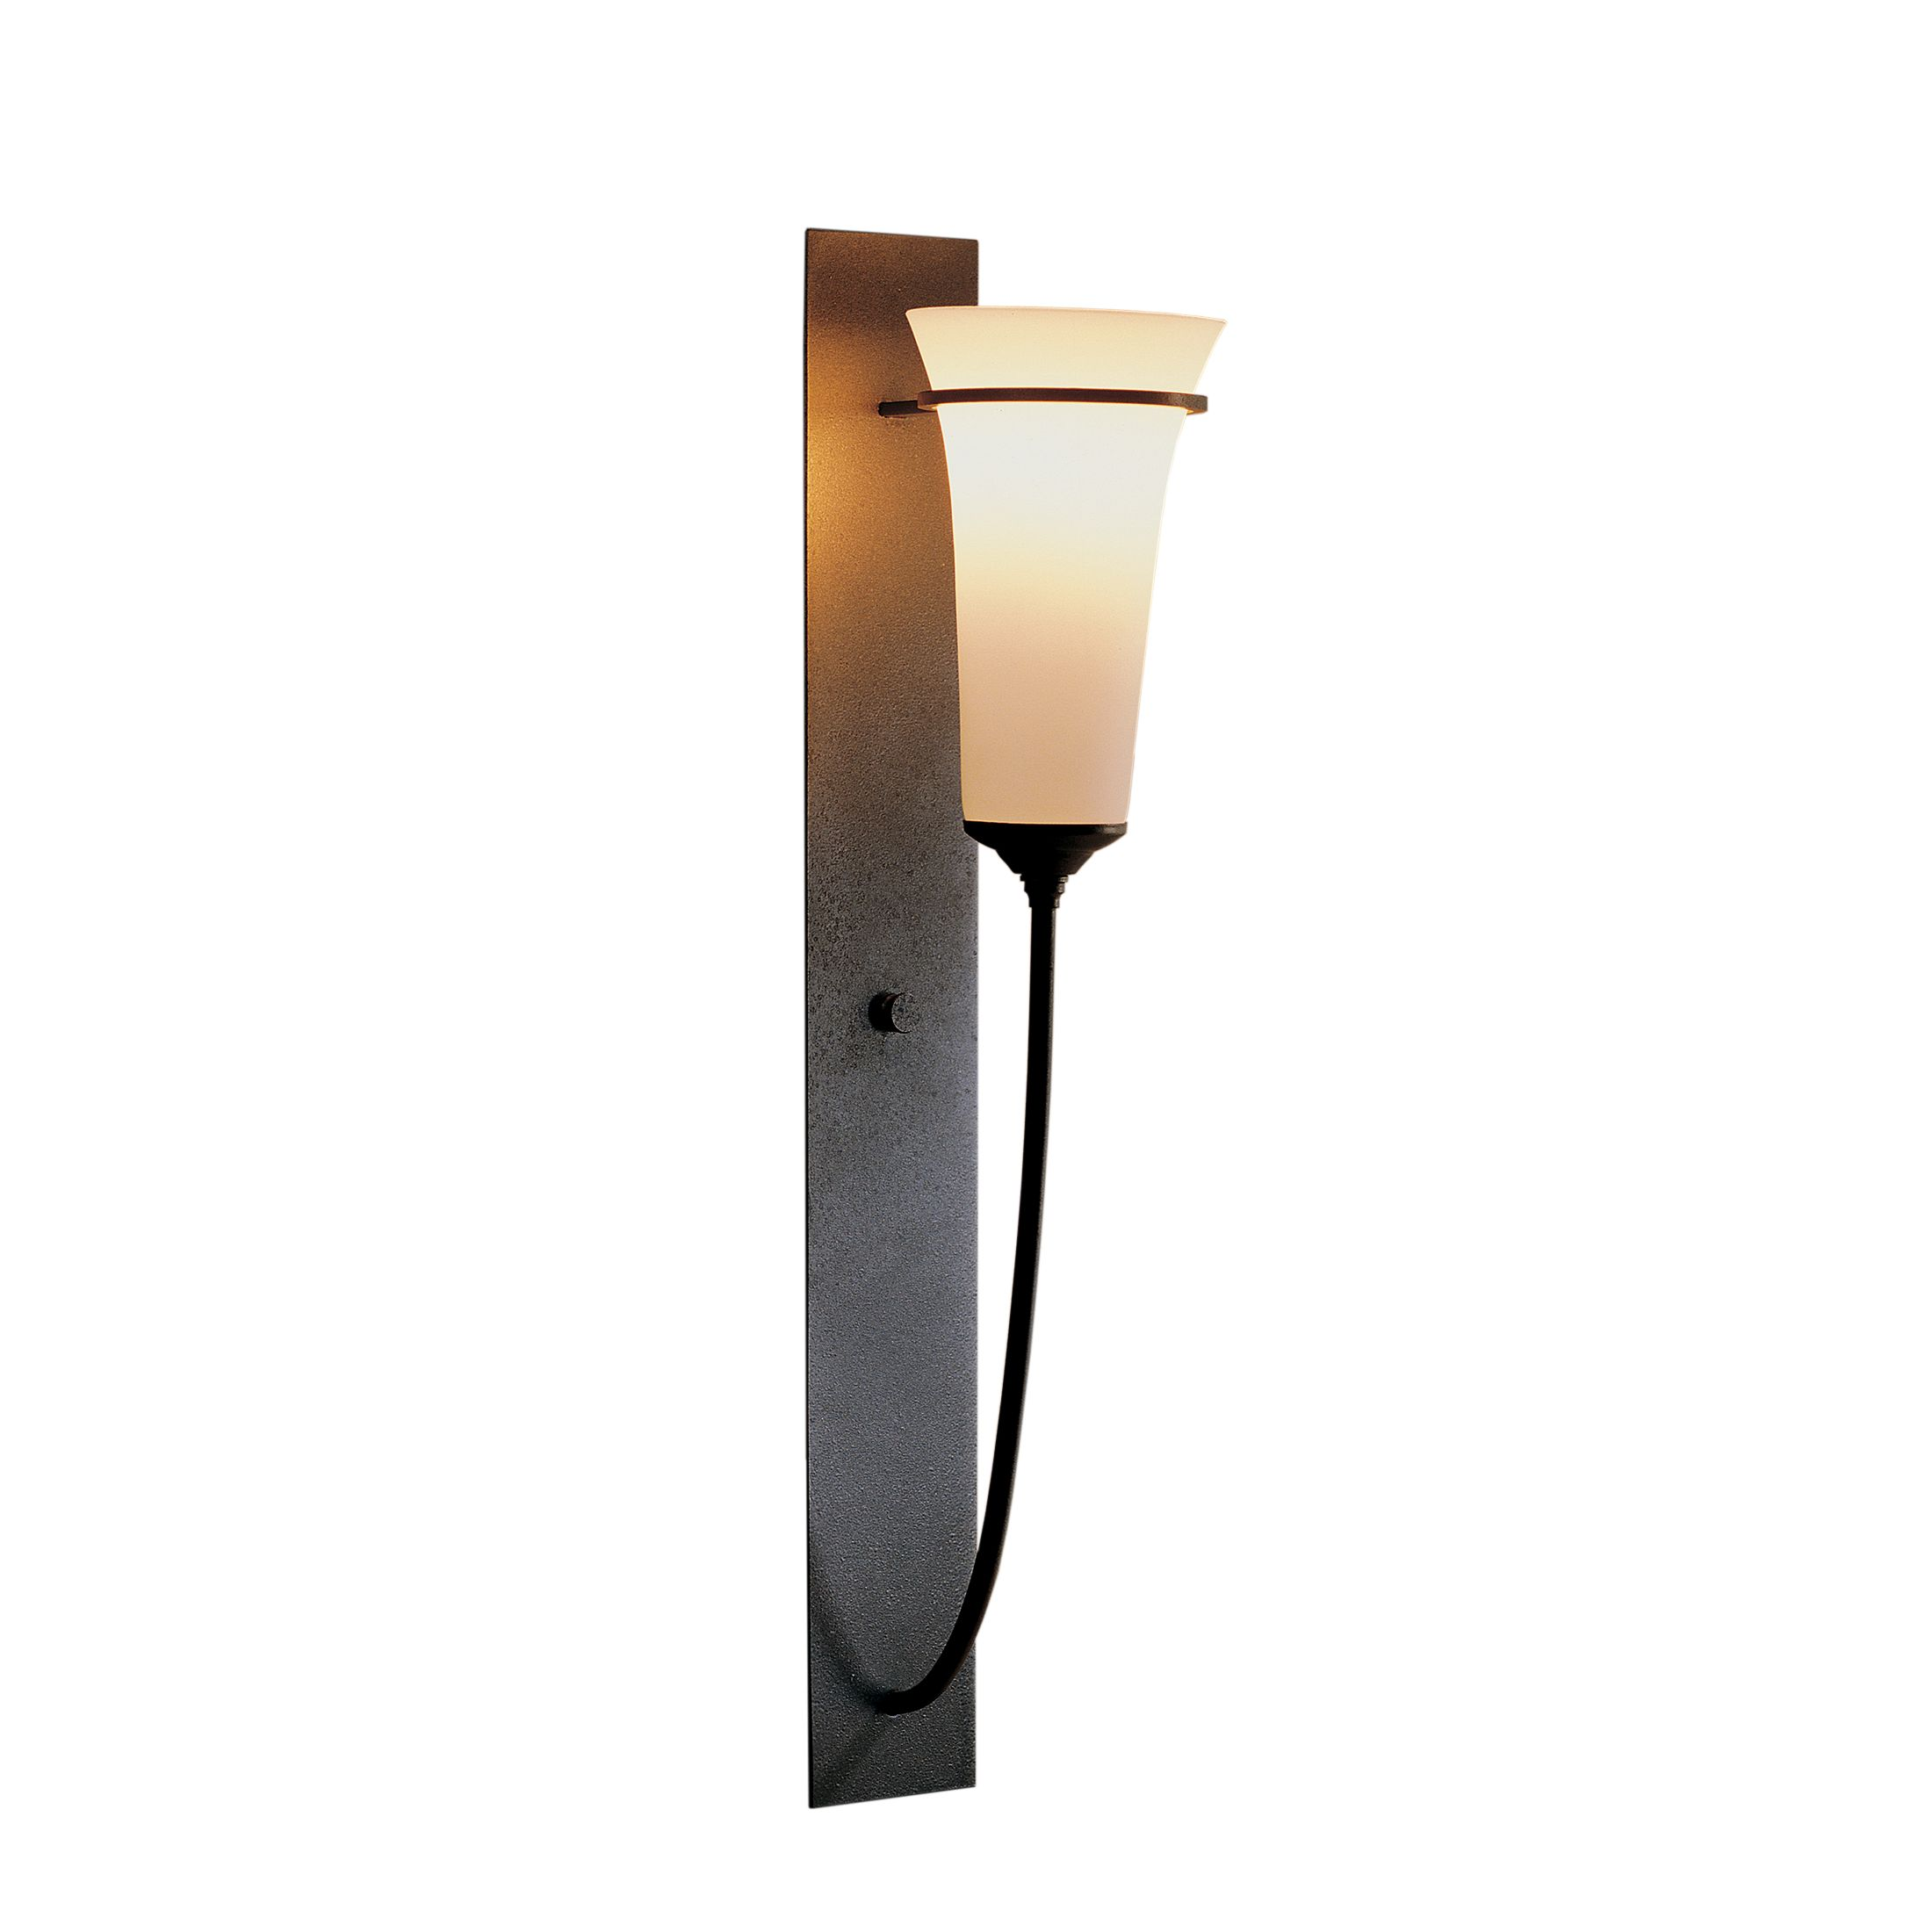 Thumbnail for Banded Wall Torch Sconce